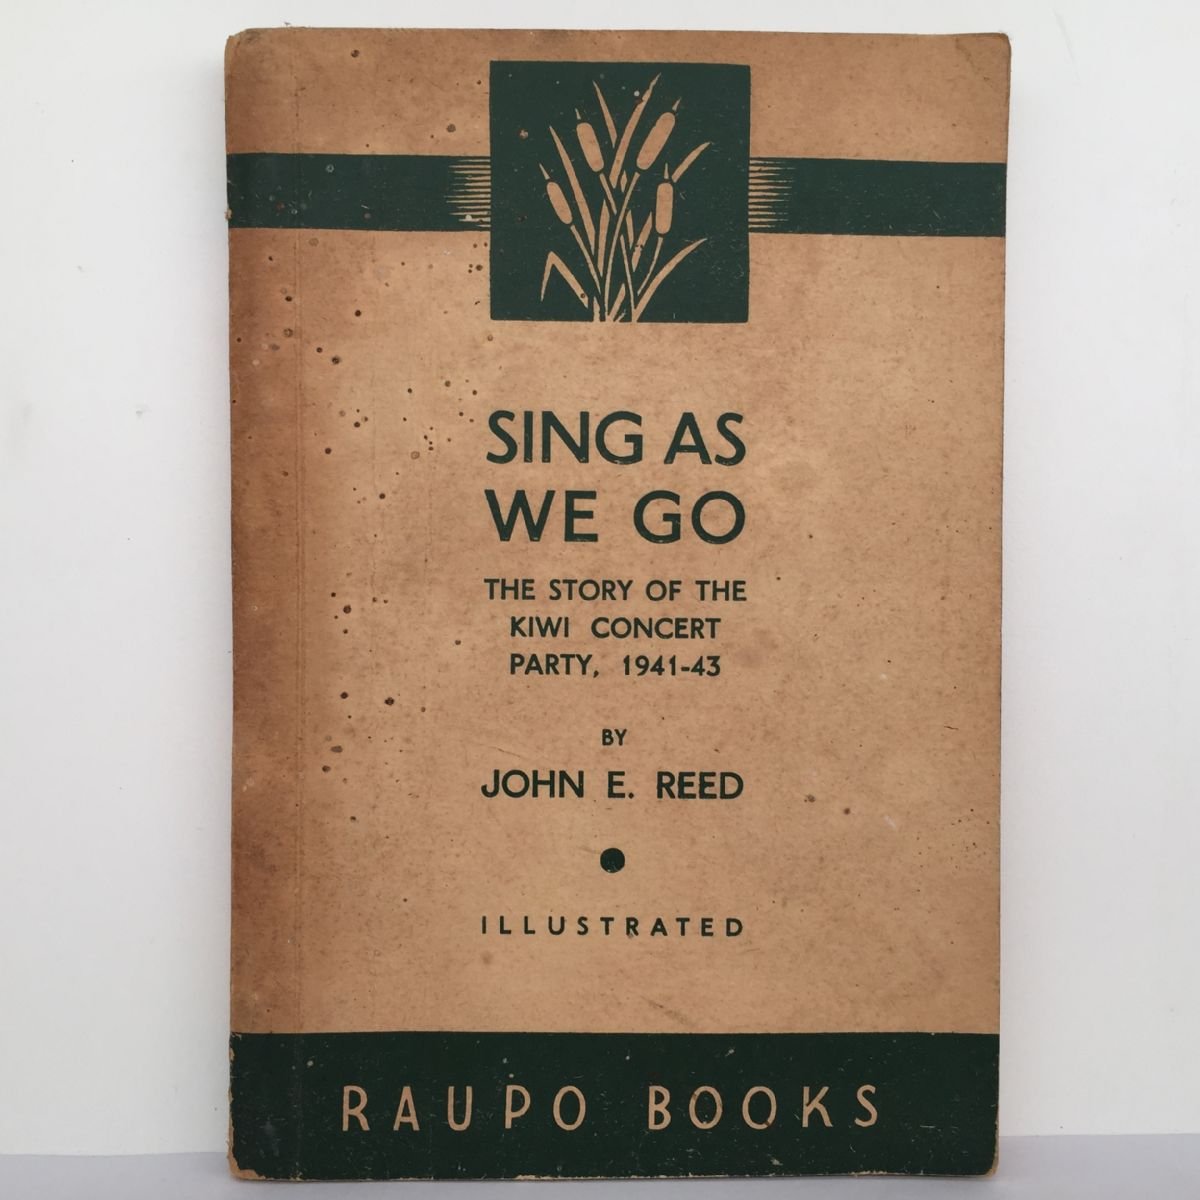 Sing As We Go : The Story of the Kiwi Concert Party, 1941-43